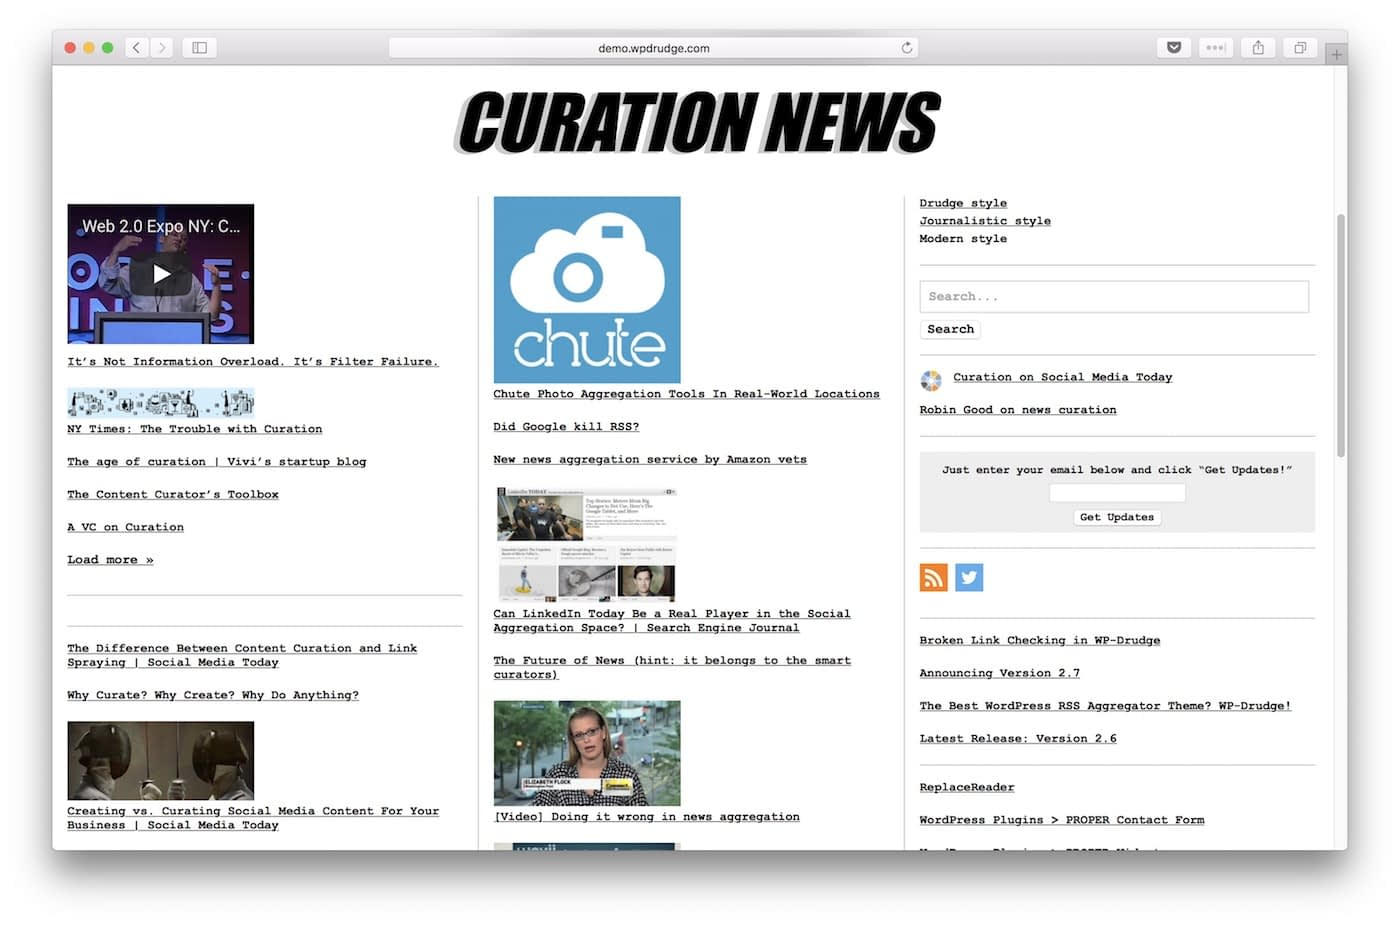 7 Great News Aggregator Websites You Should Check Out (Plus